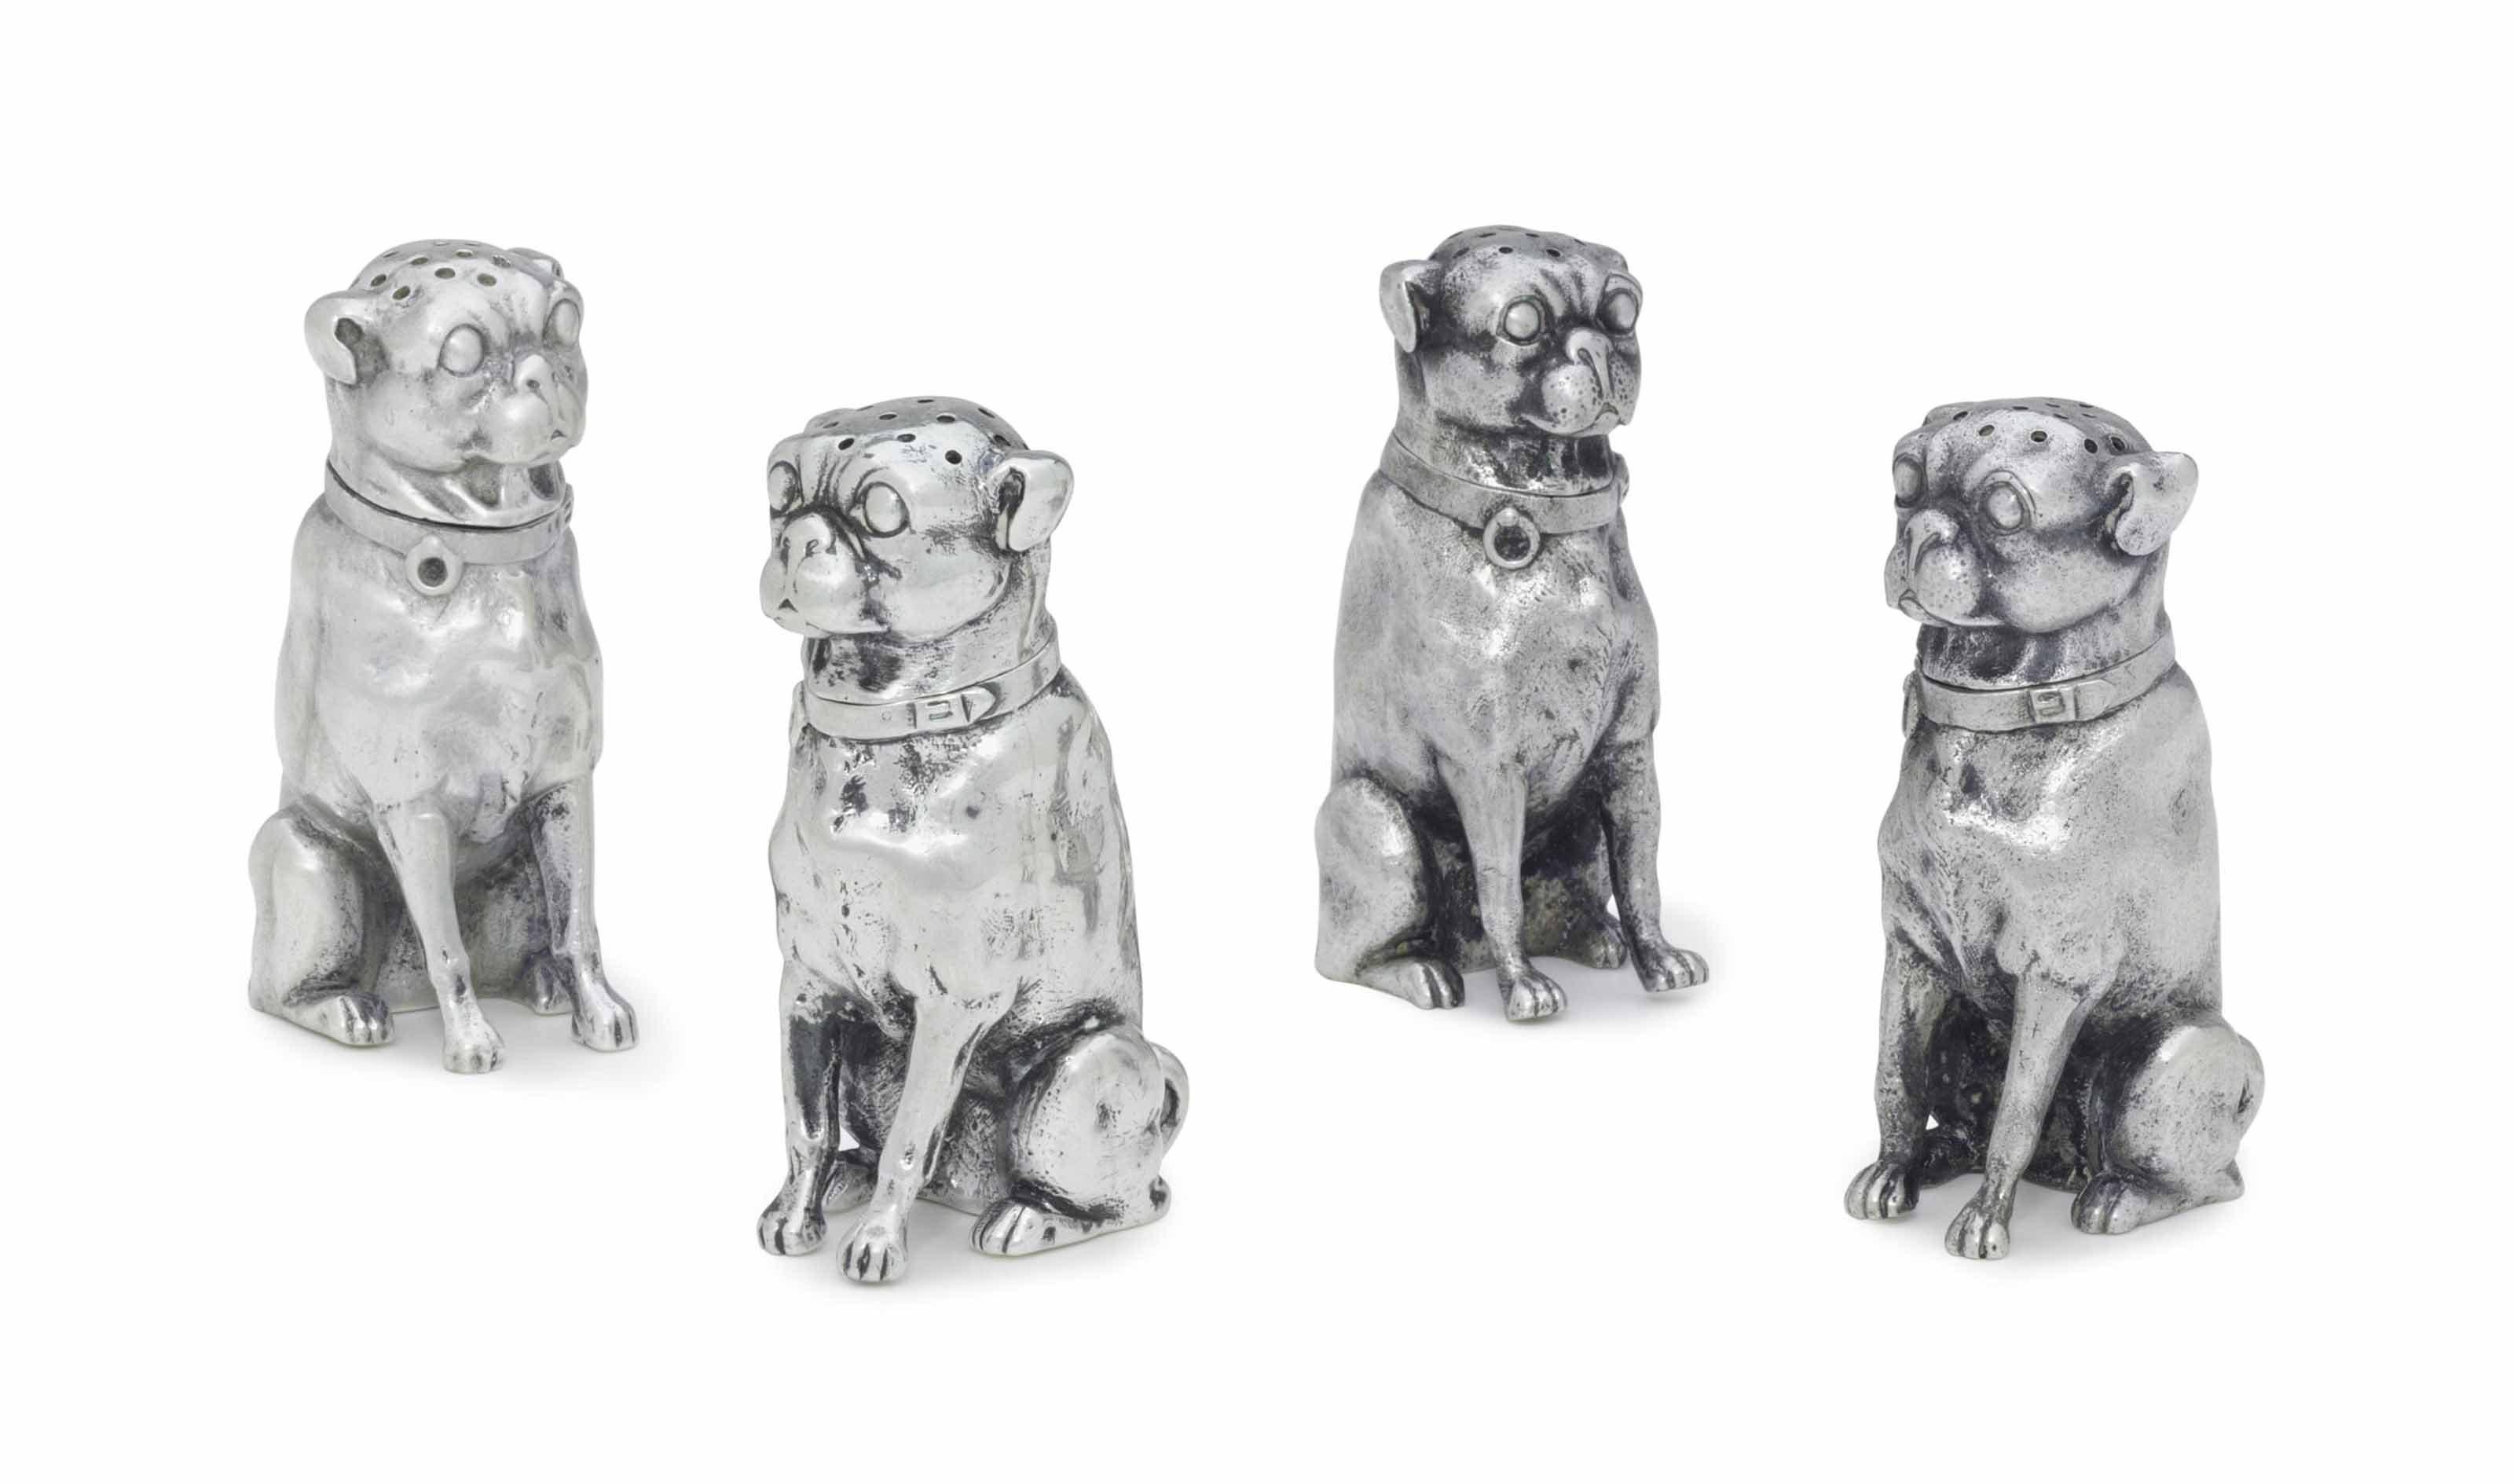 TWO PAIRS OF SILVER BULLDOG-FO